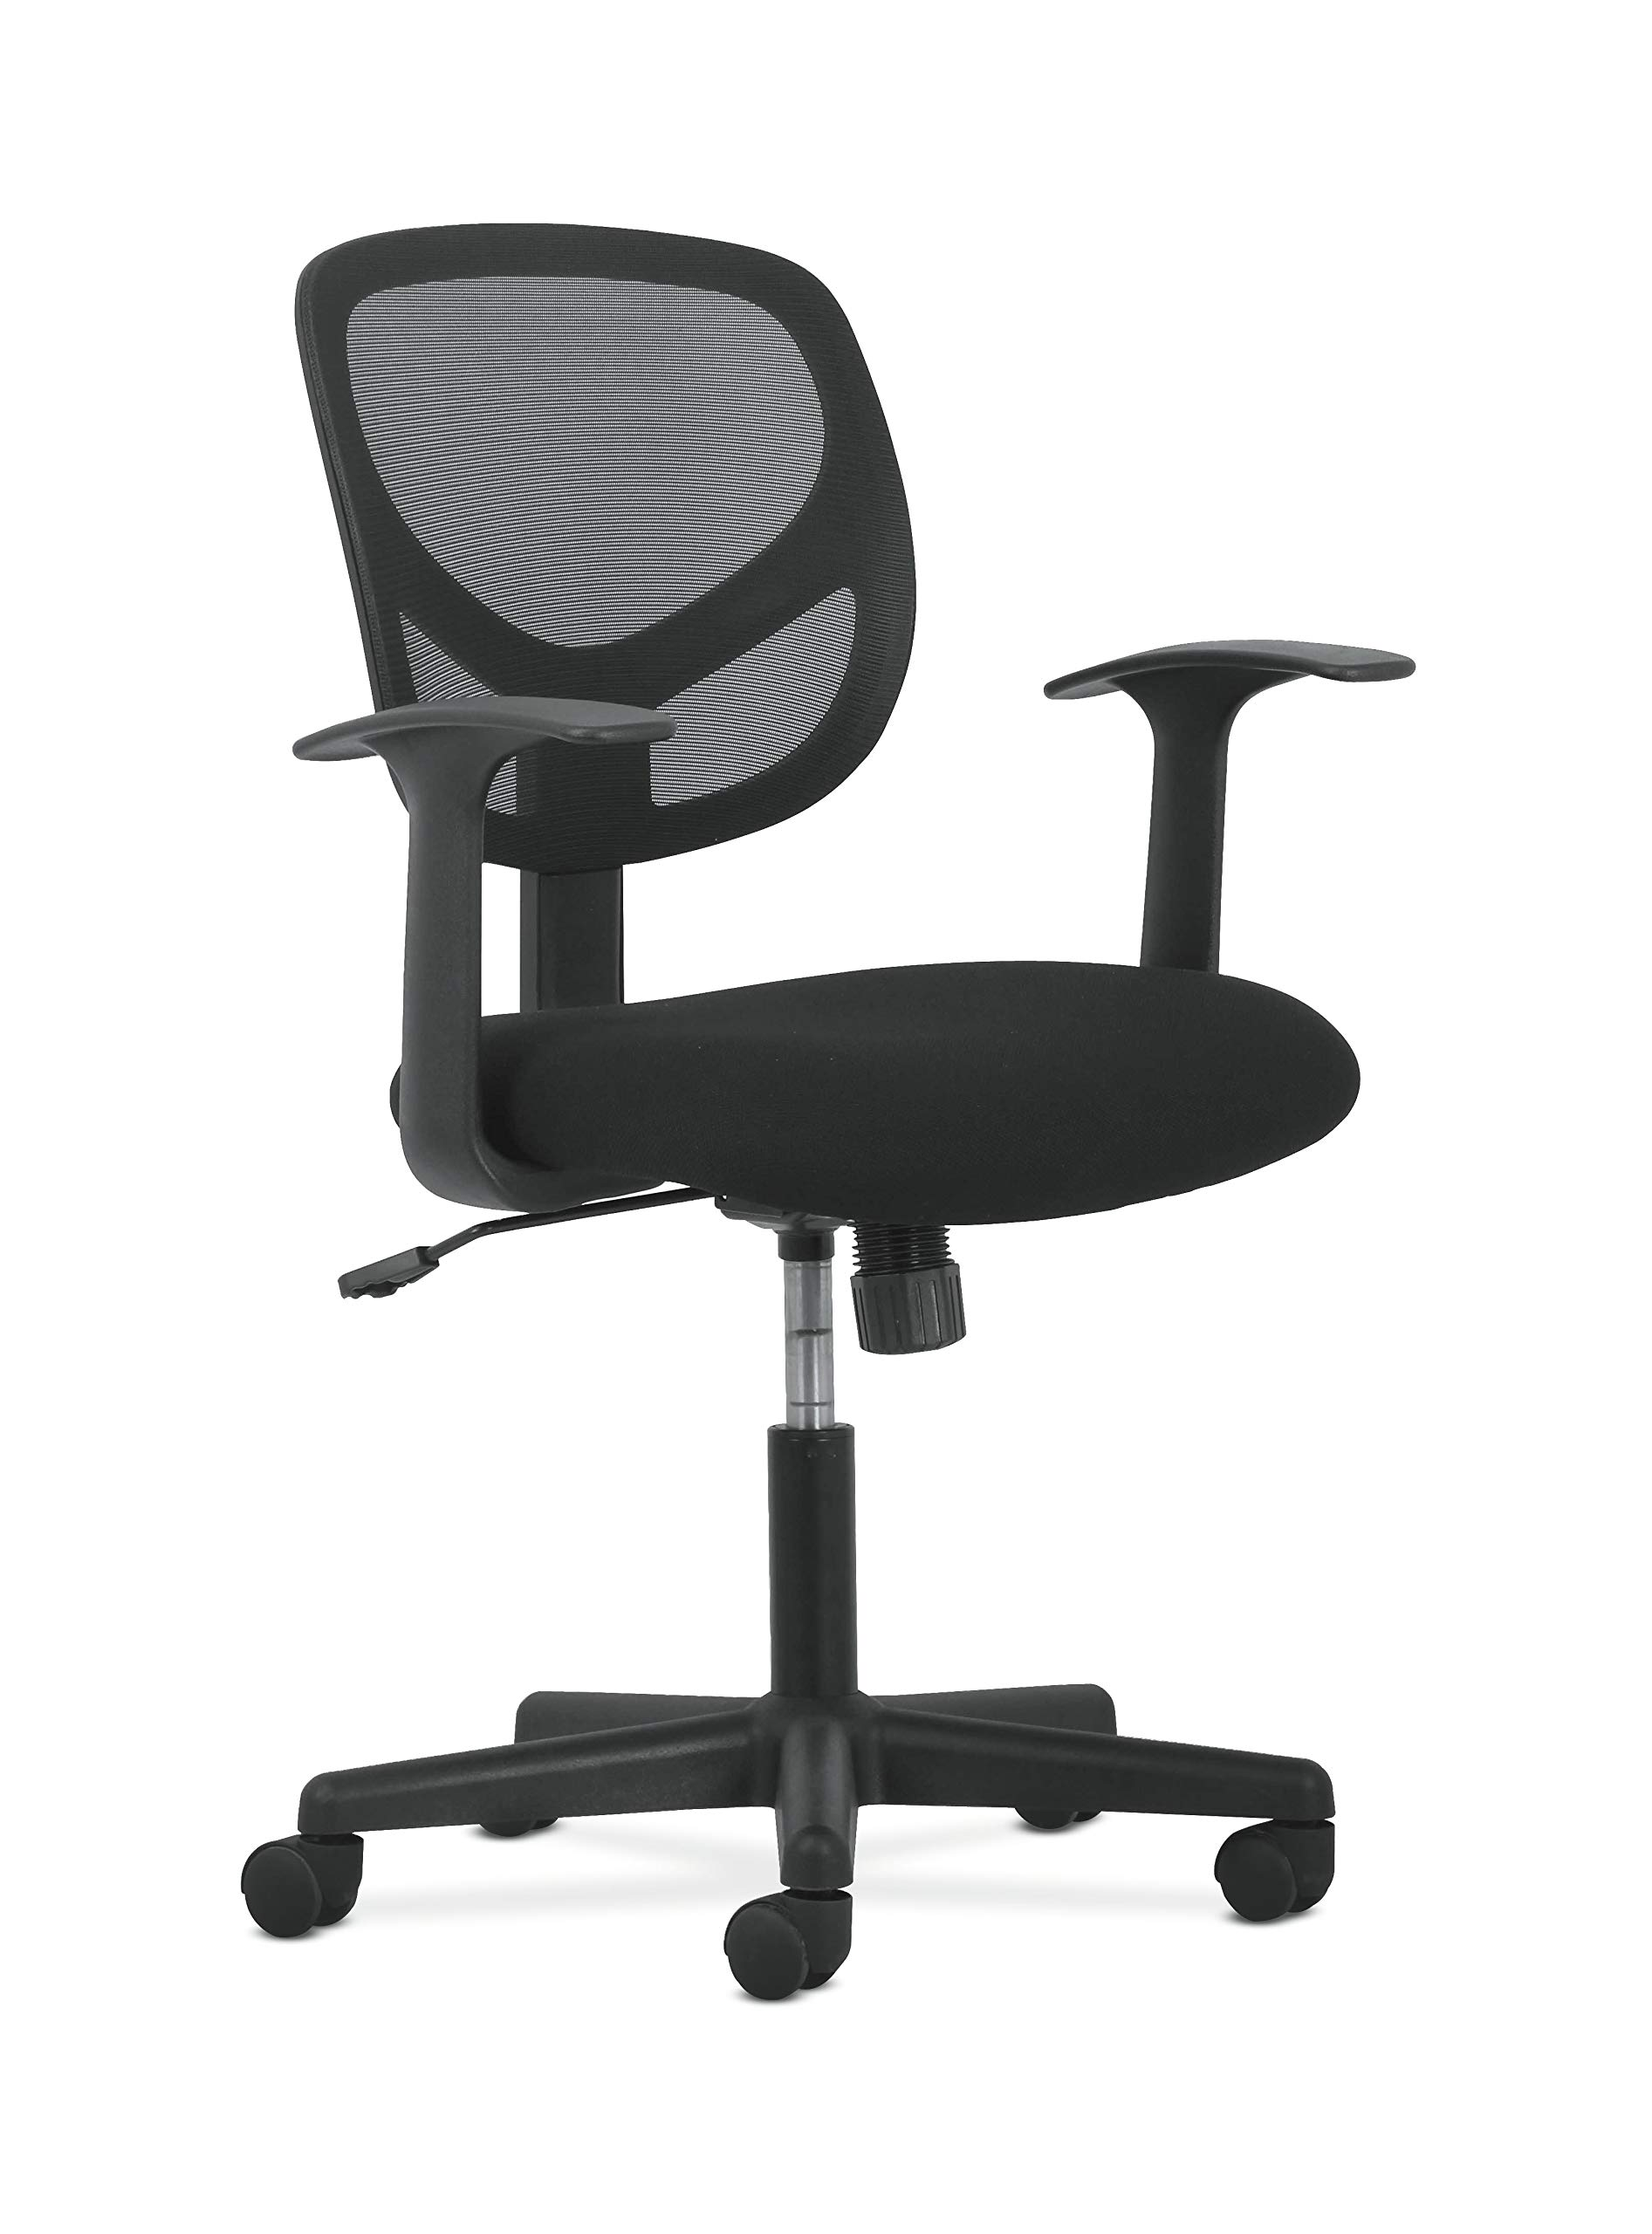 Sadie Swivel Mid Back Mesh Task Chair with Arms - Ergonomic Computer/Office Chair (HVST102) by HON